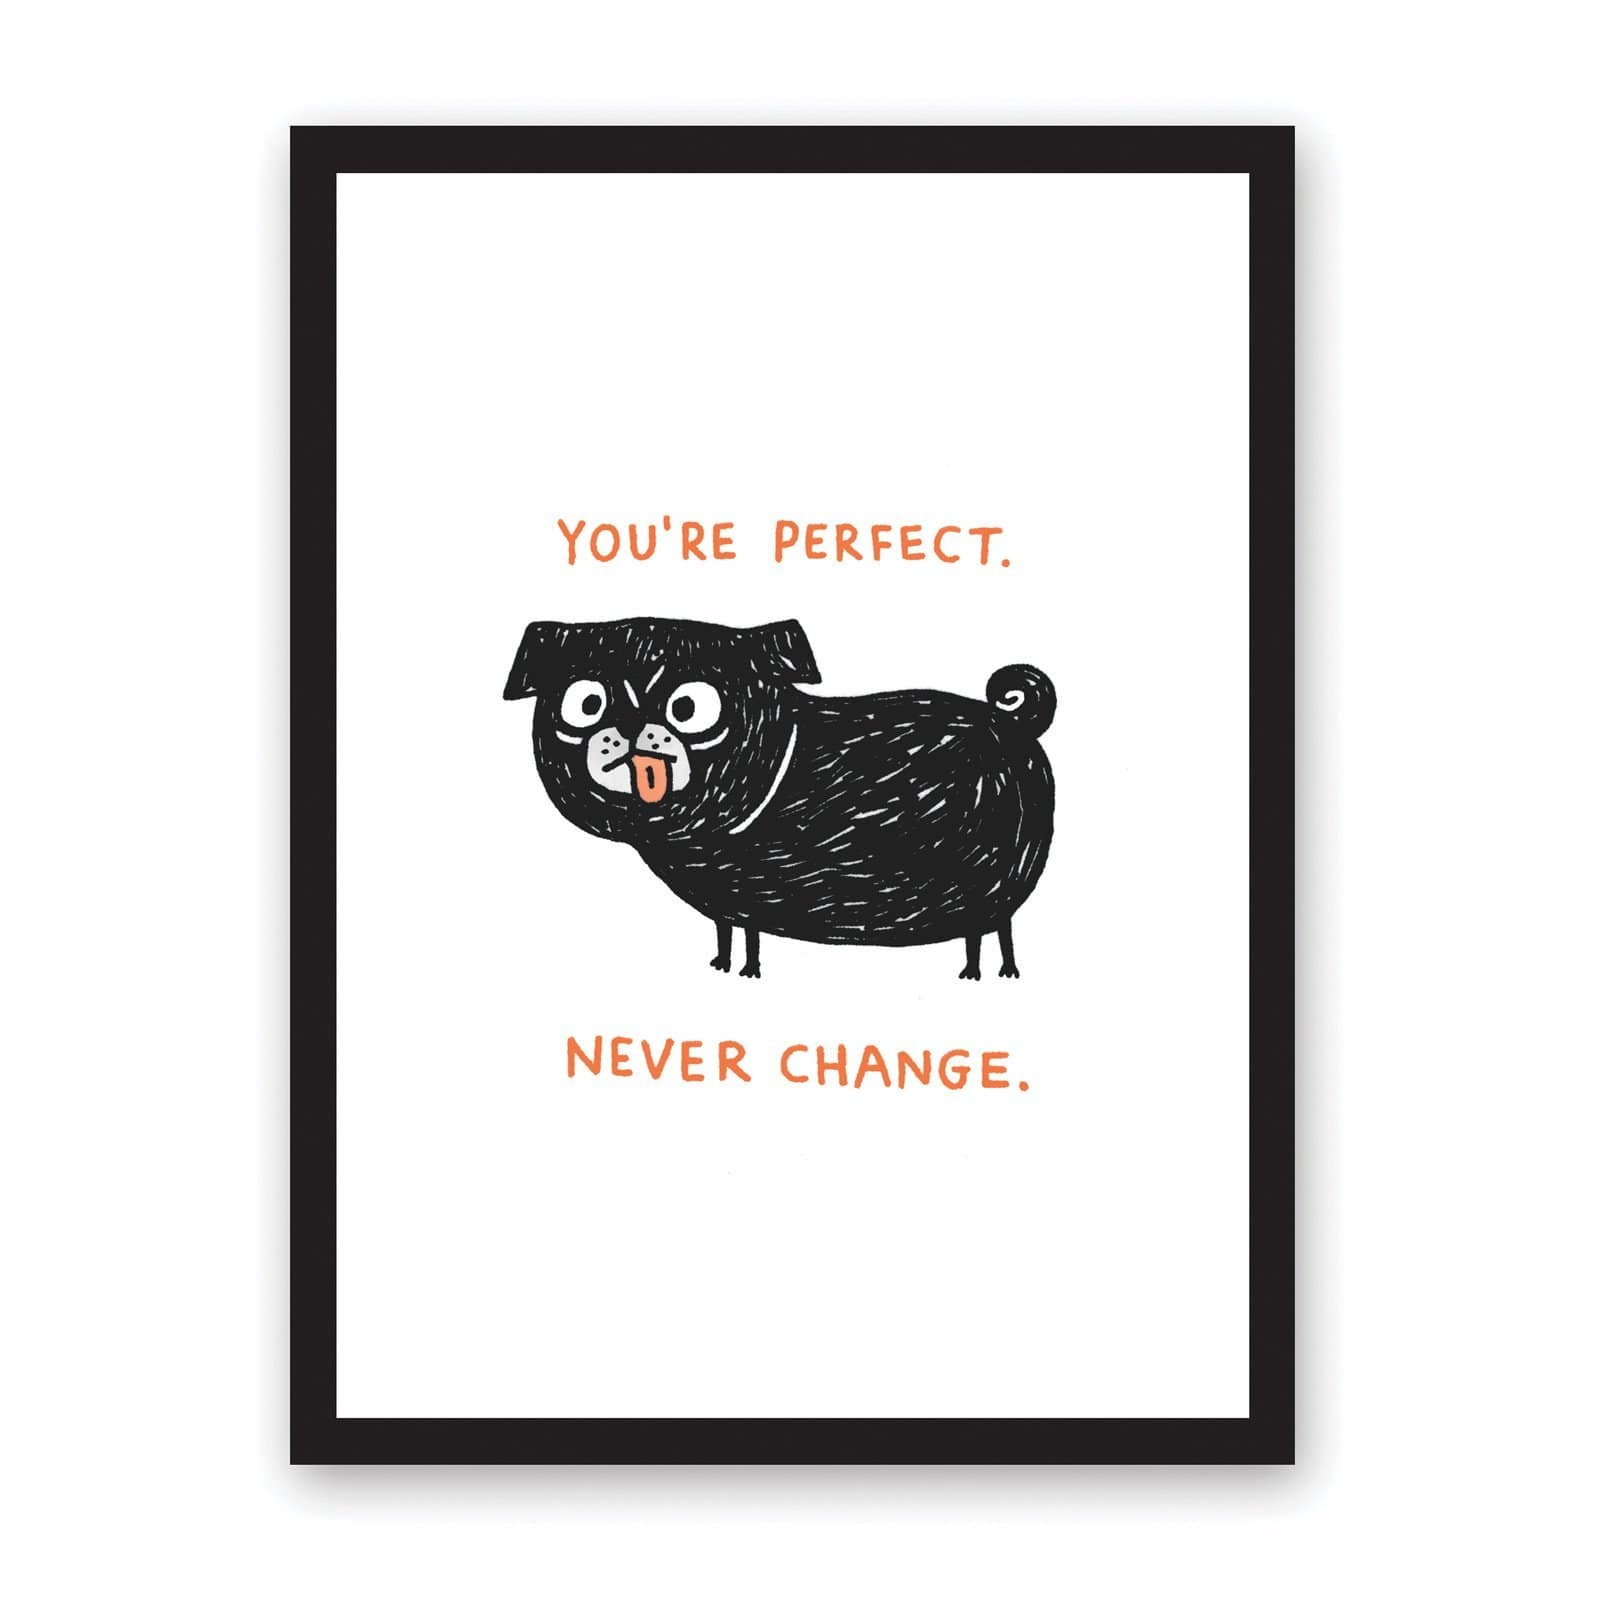 Gemma Correll illustration of black pug with cross eyes and tongue out, with orange wording above and below dog